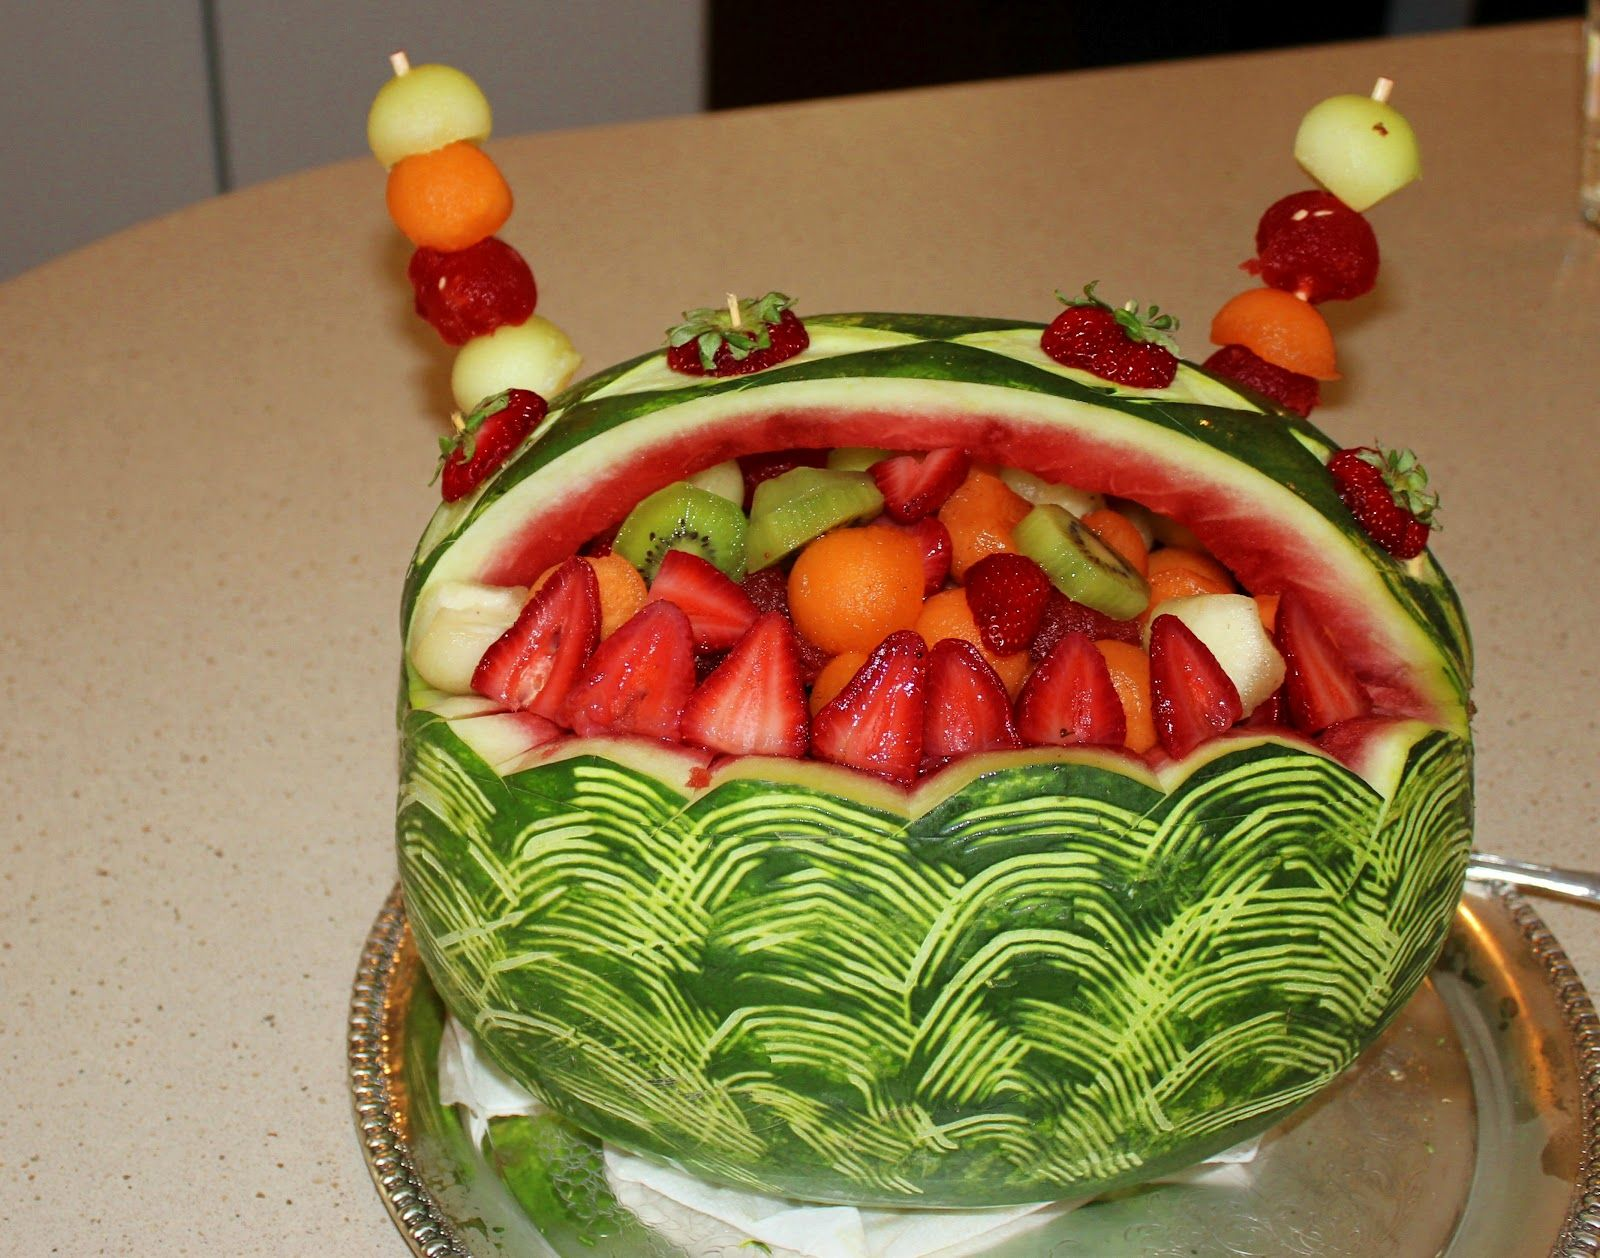 Nc san diego cooking classes fruit salad carved melon